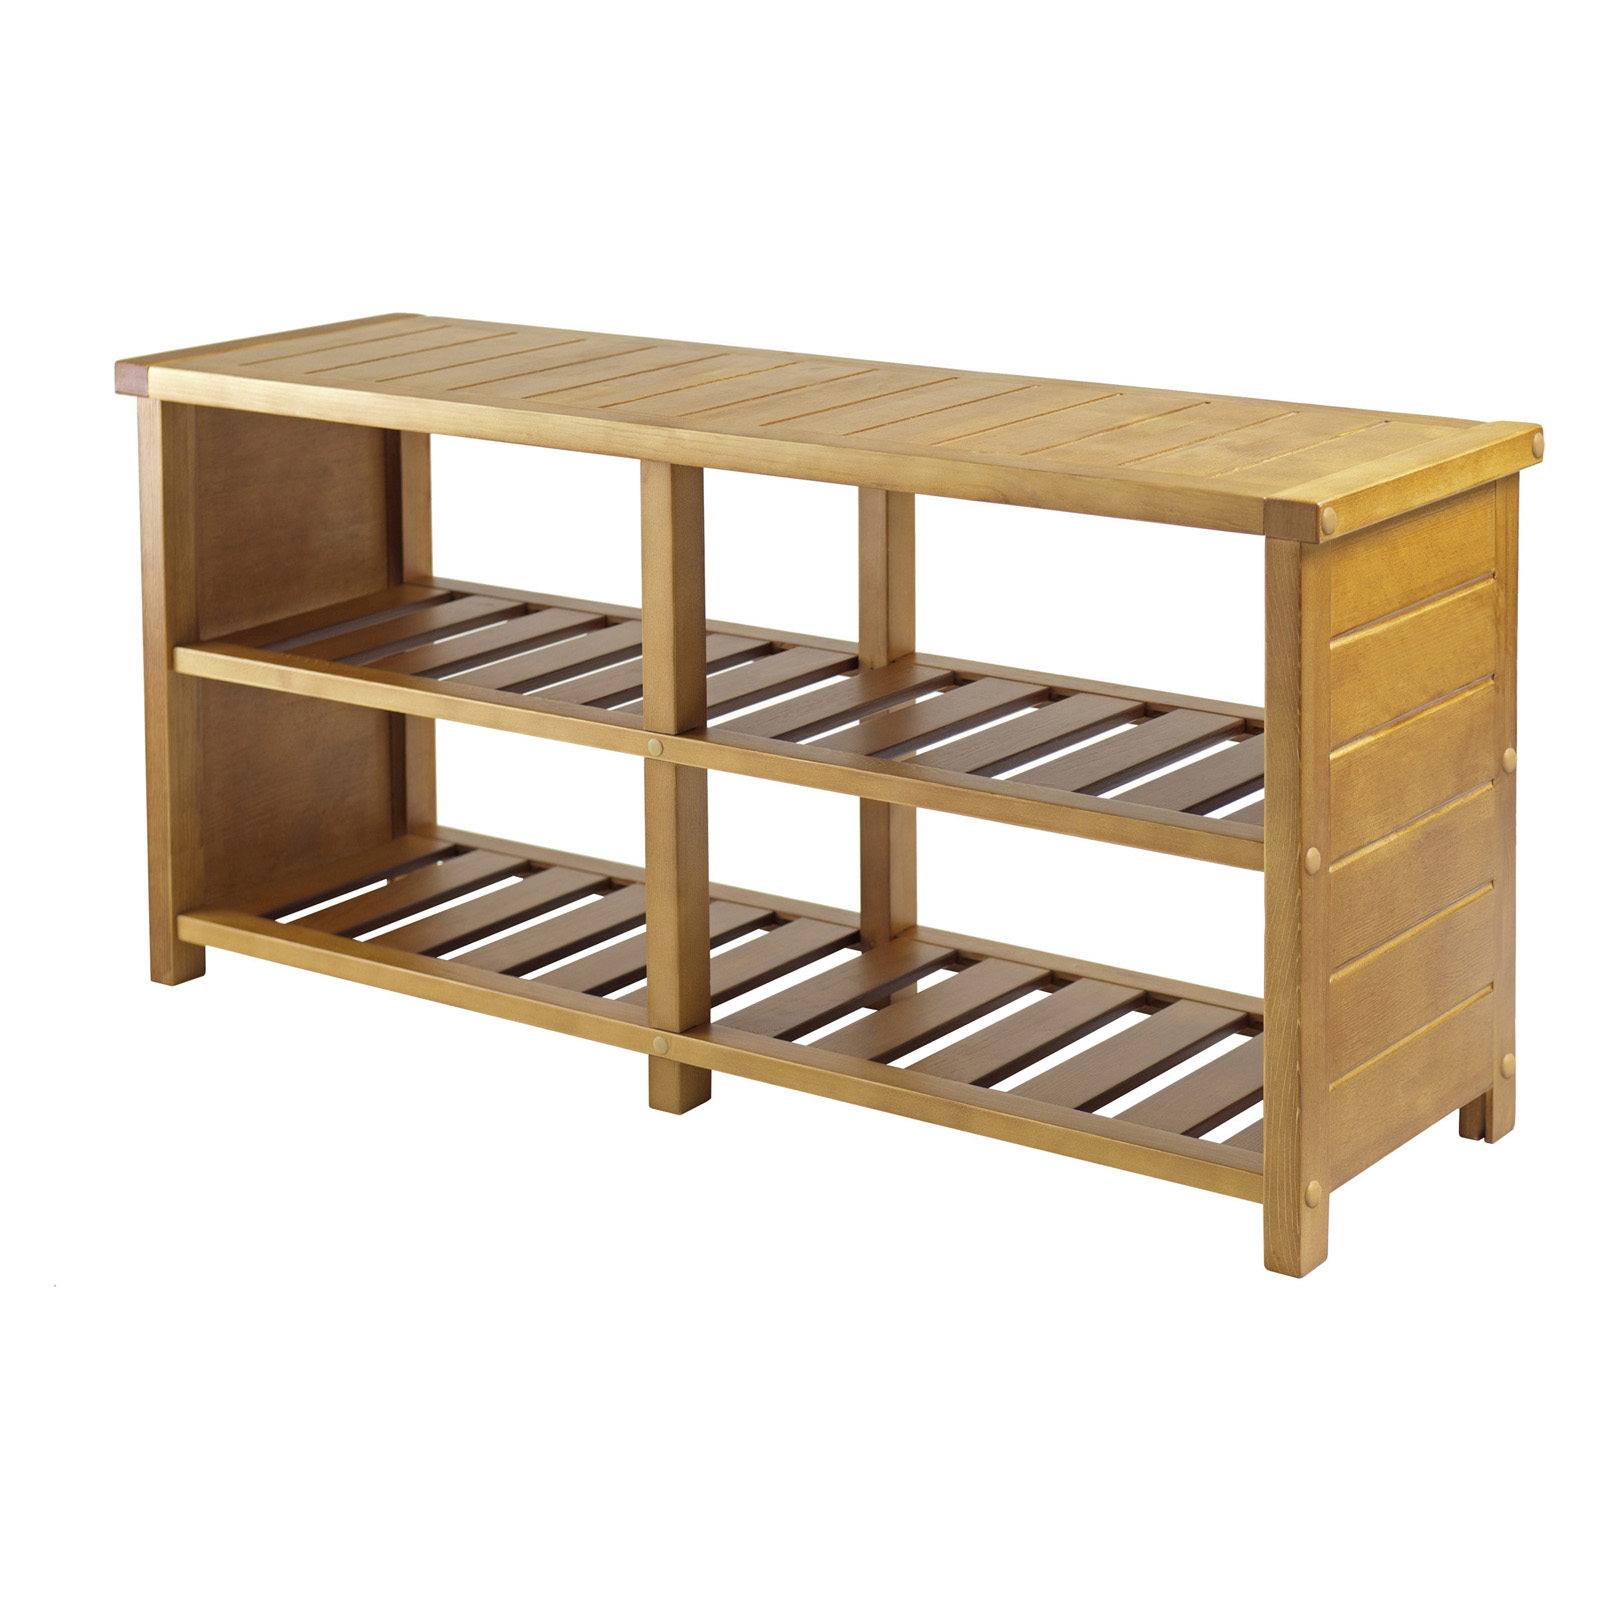 Winsome Keystone Shoe Storage Bench Indoor Benches At Hayneedle